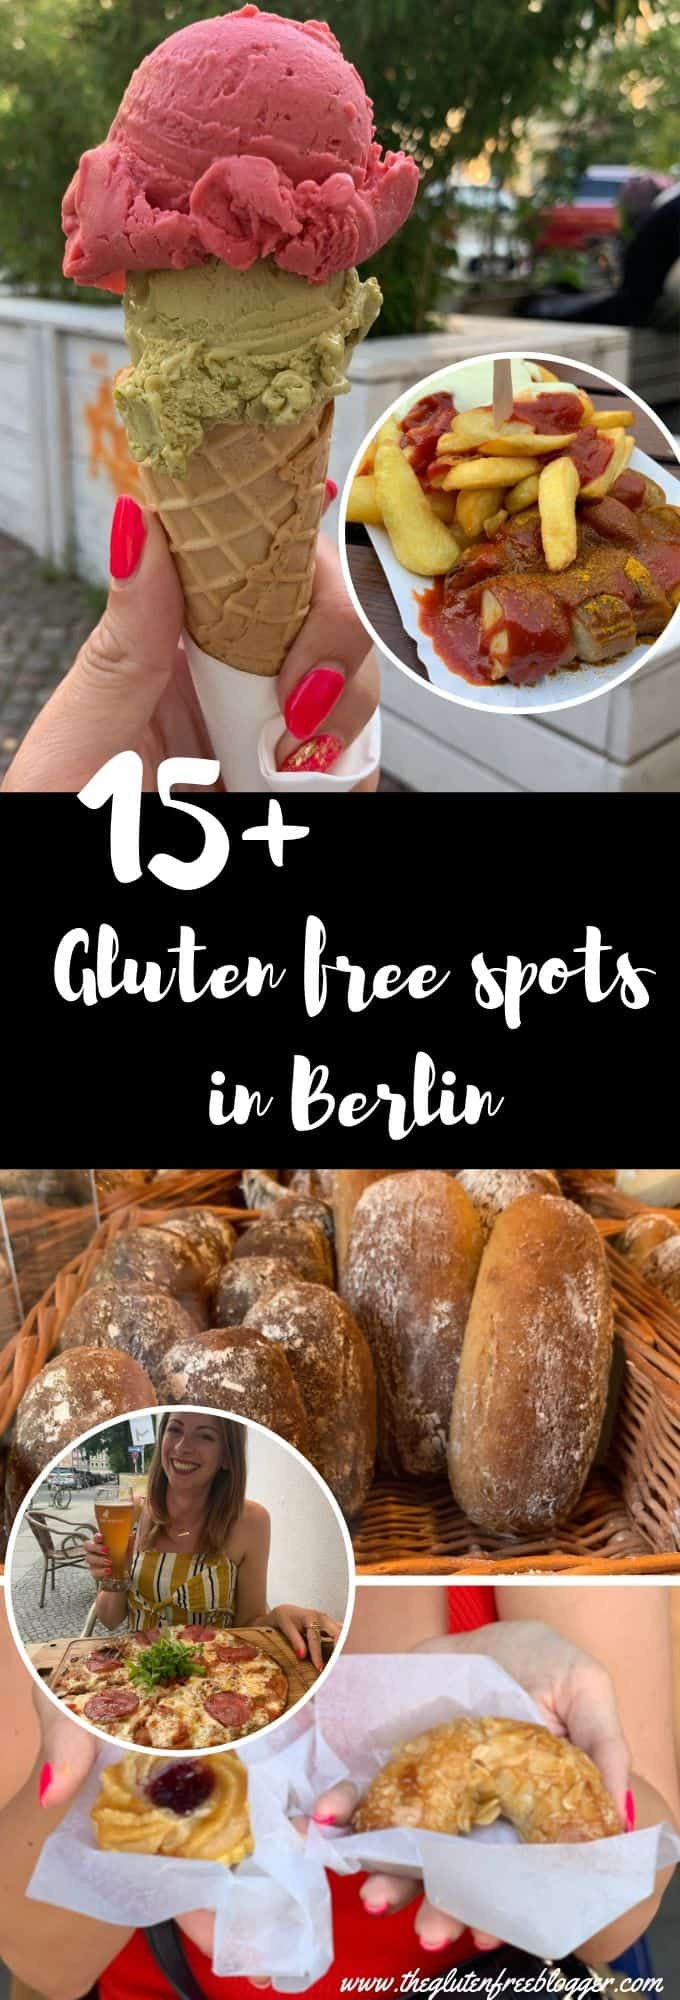 gluten free berlin - places to eat in berlin on a gluten free and coeliac diet, celiac travel and europe